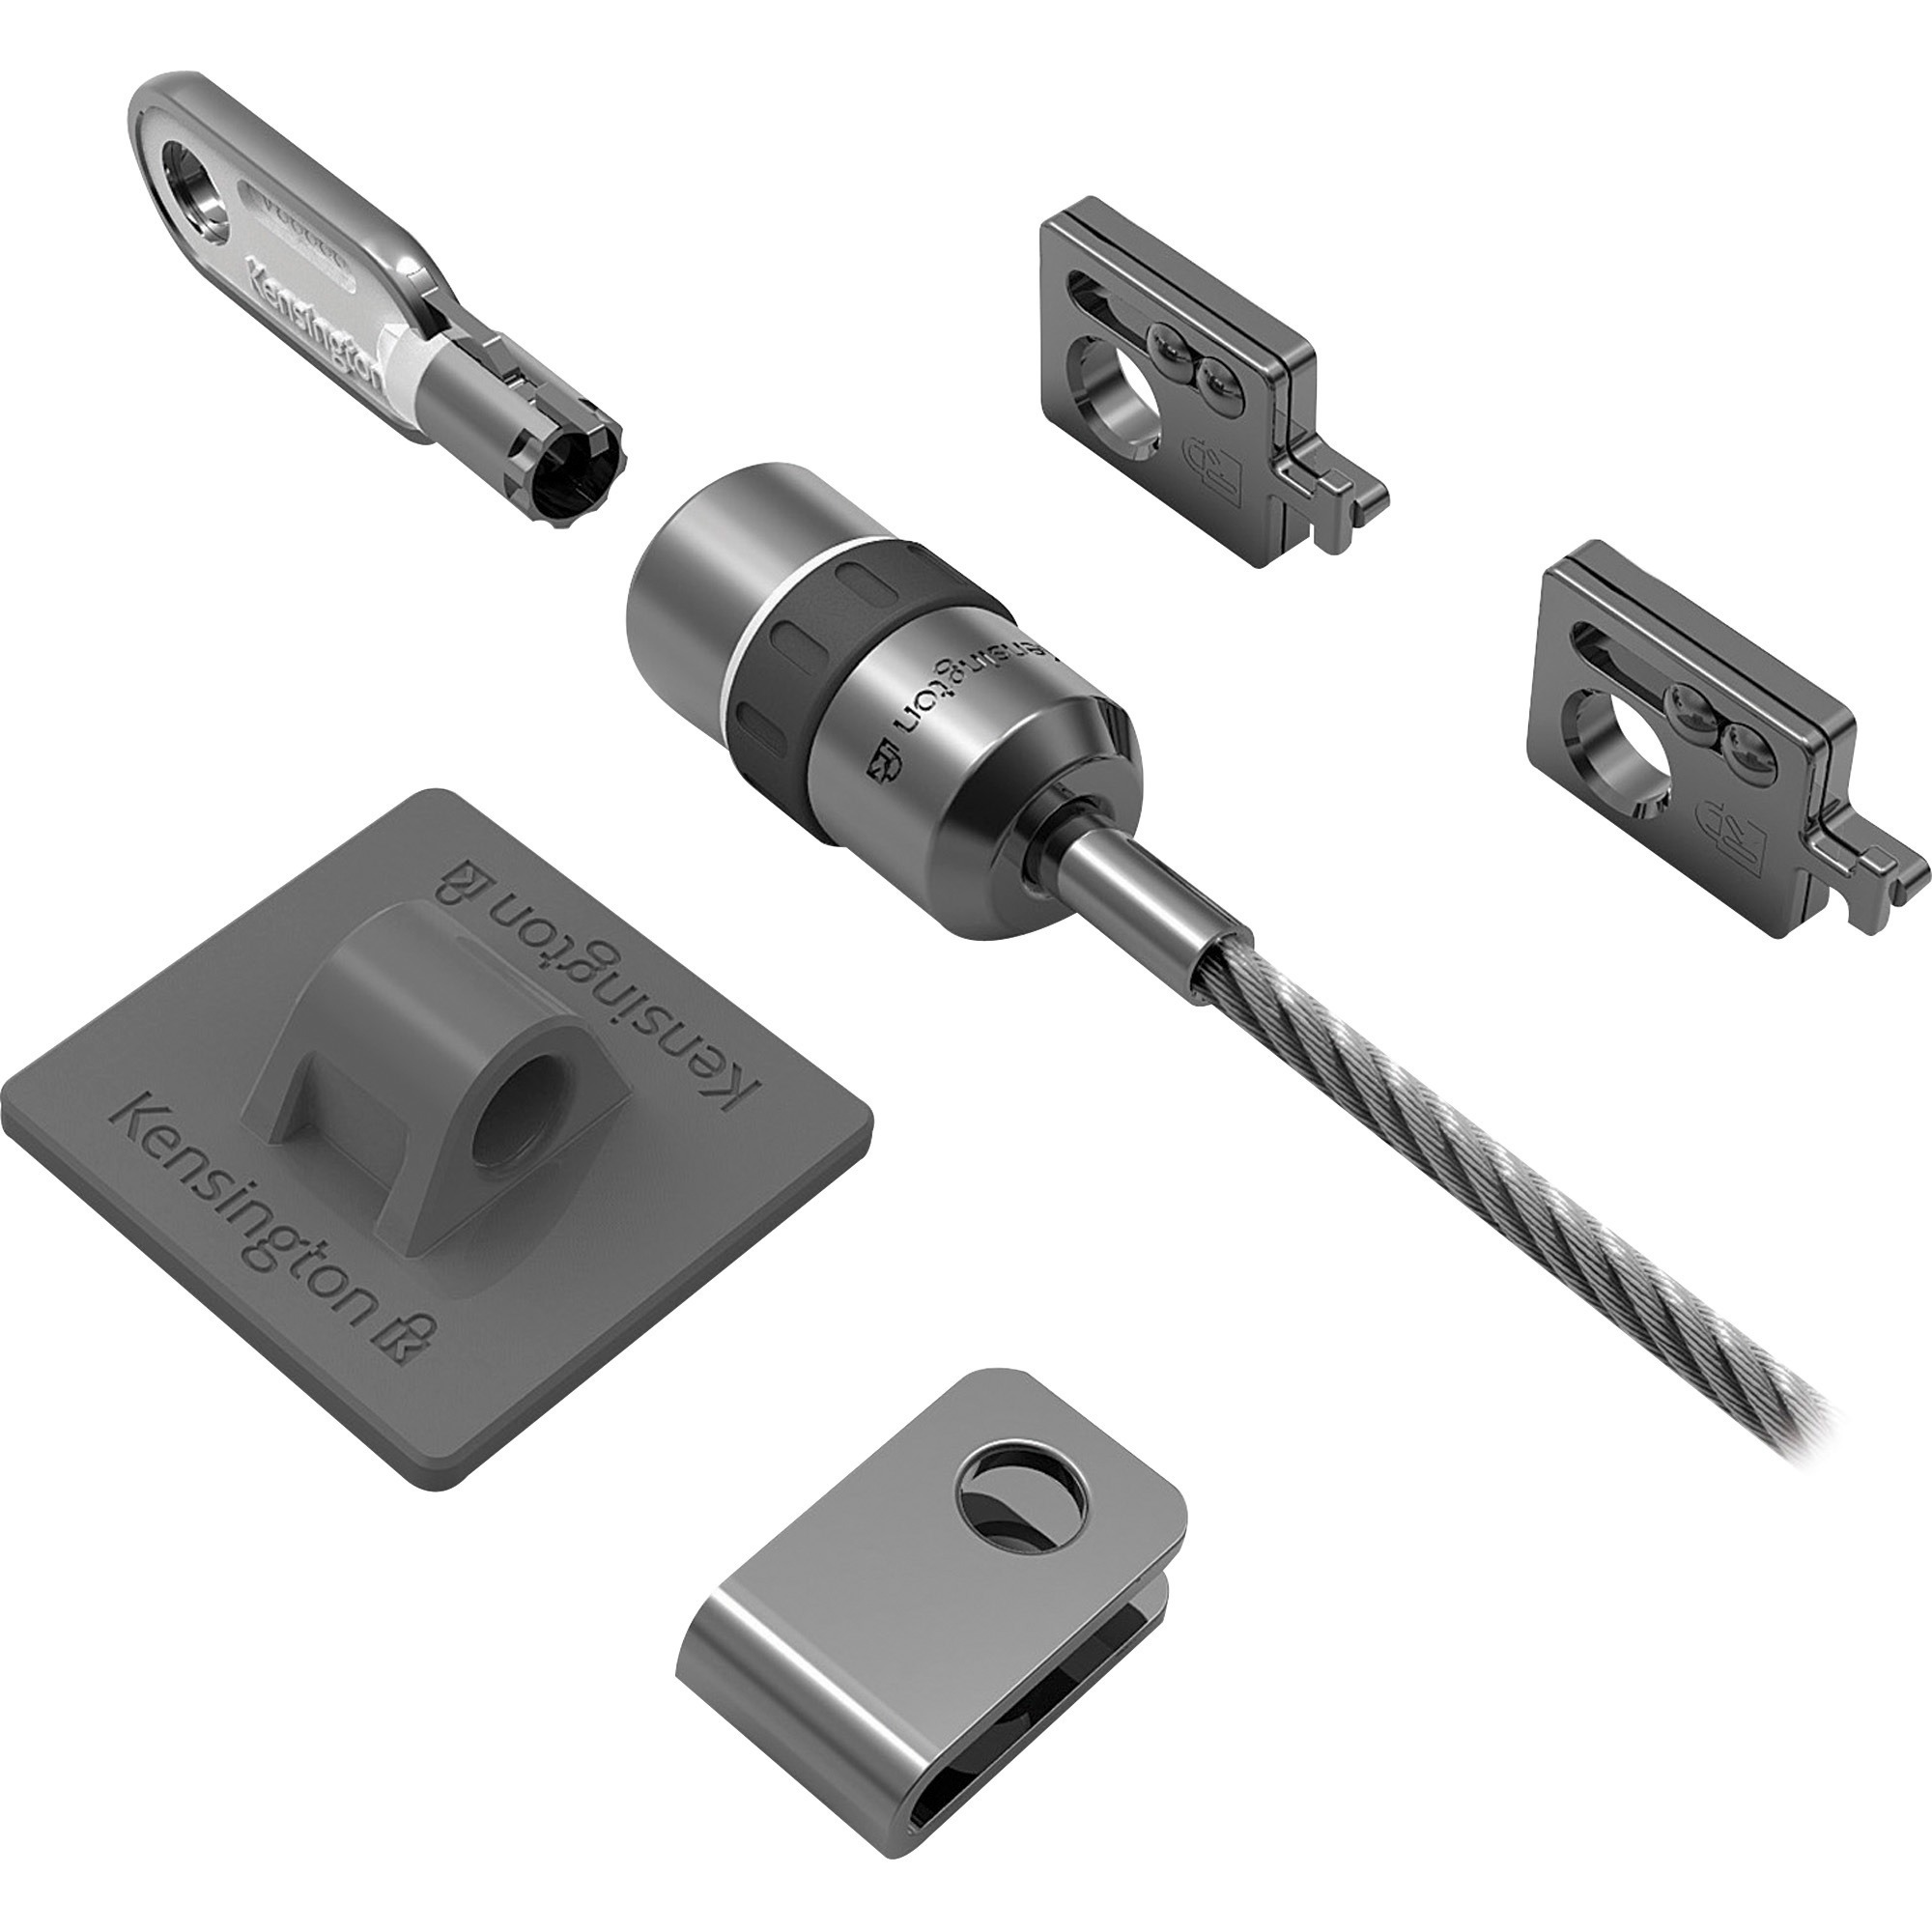 Kensington, KMW64615, Desktop/Peripherals Locking Kit, 1, Silver